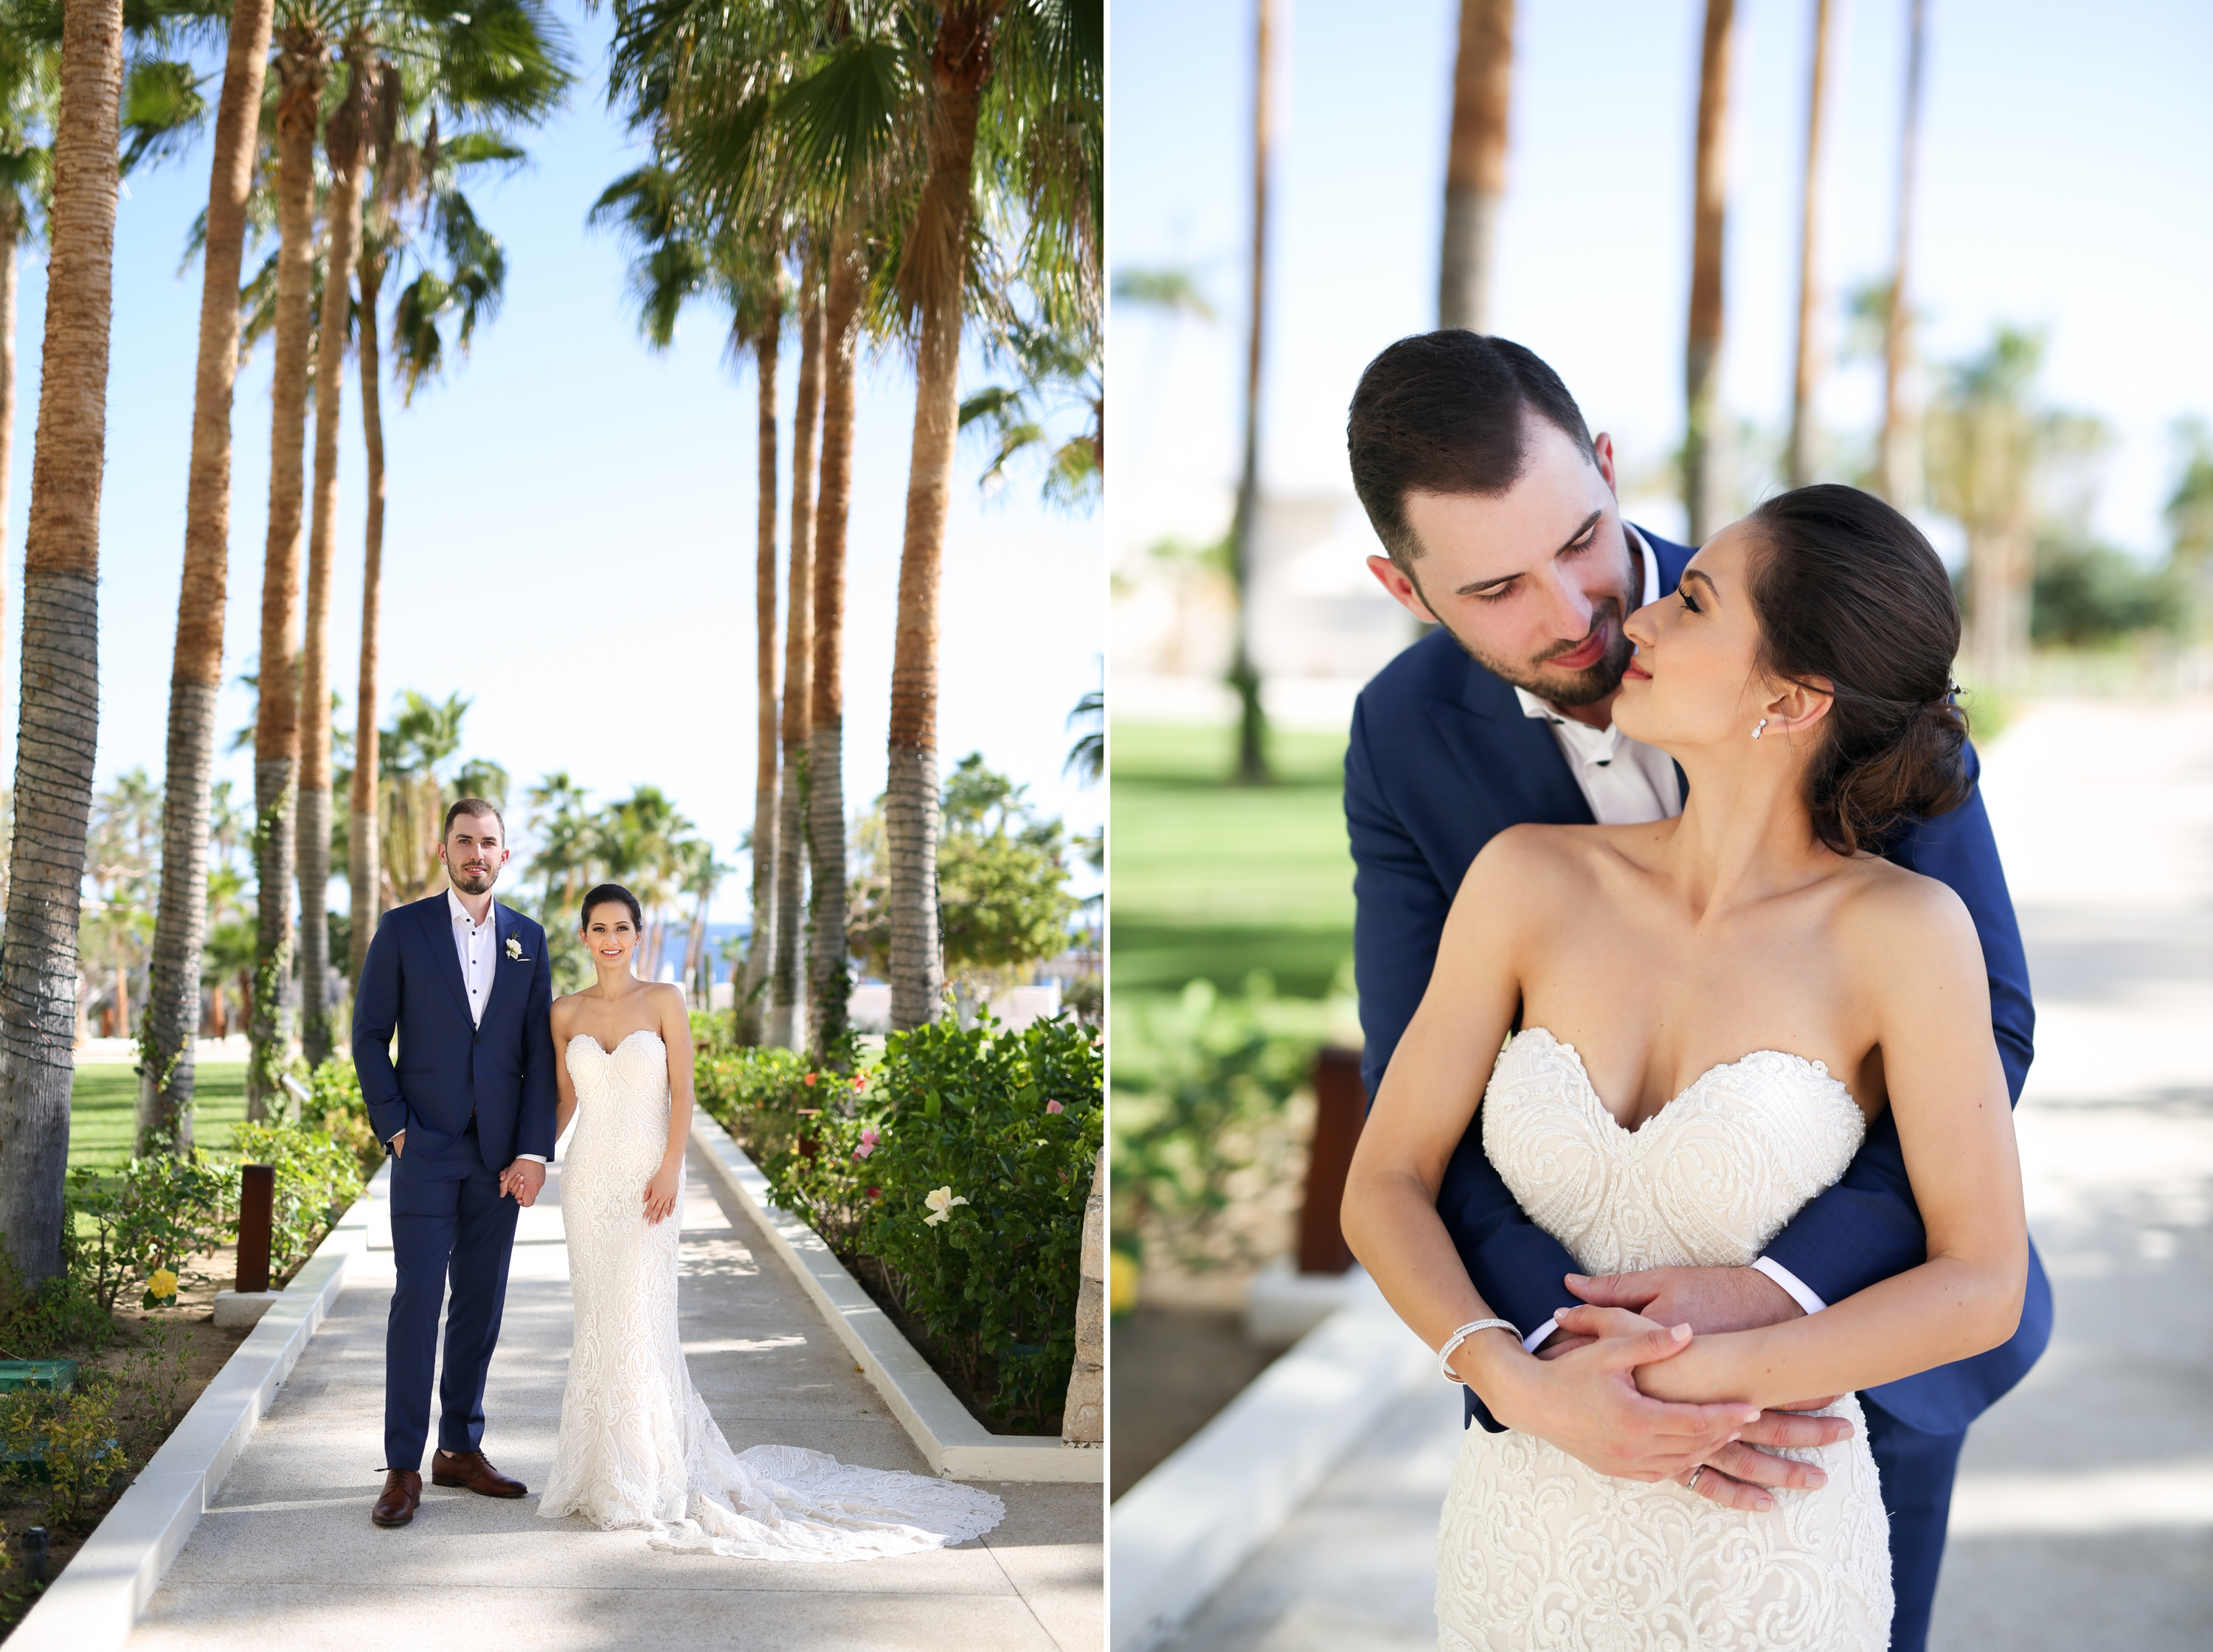 Palm Trees Couple Paradisus Mexico Los Cabos Sea of Cortez Zsuzsi Pal Photography Destination Wedding